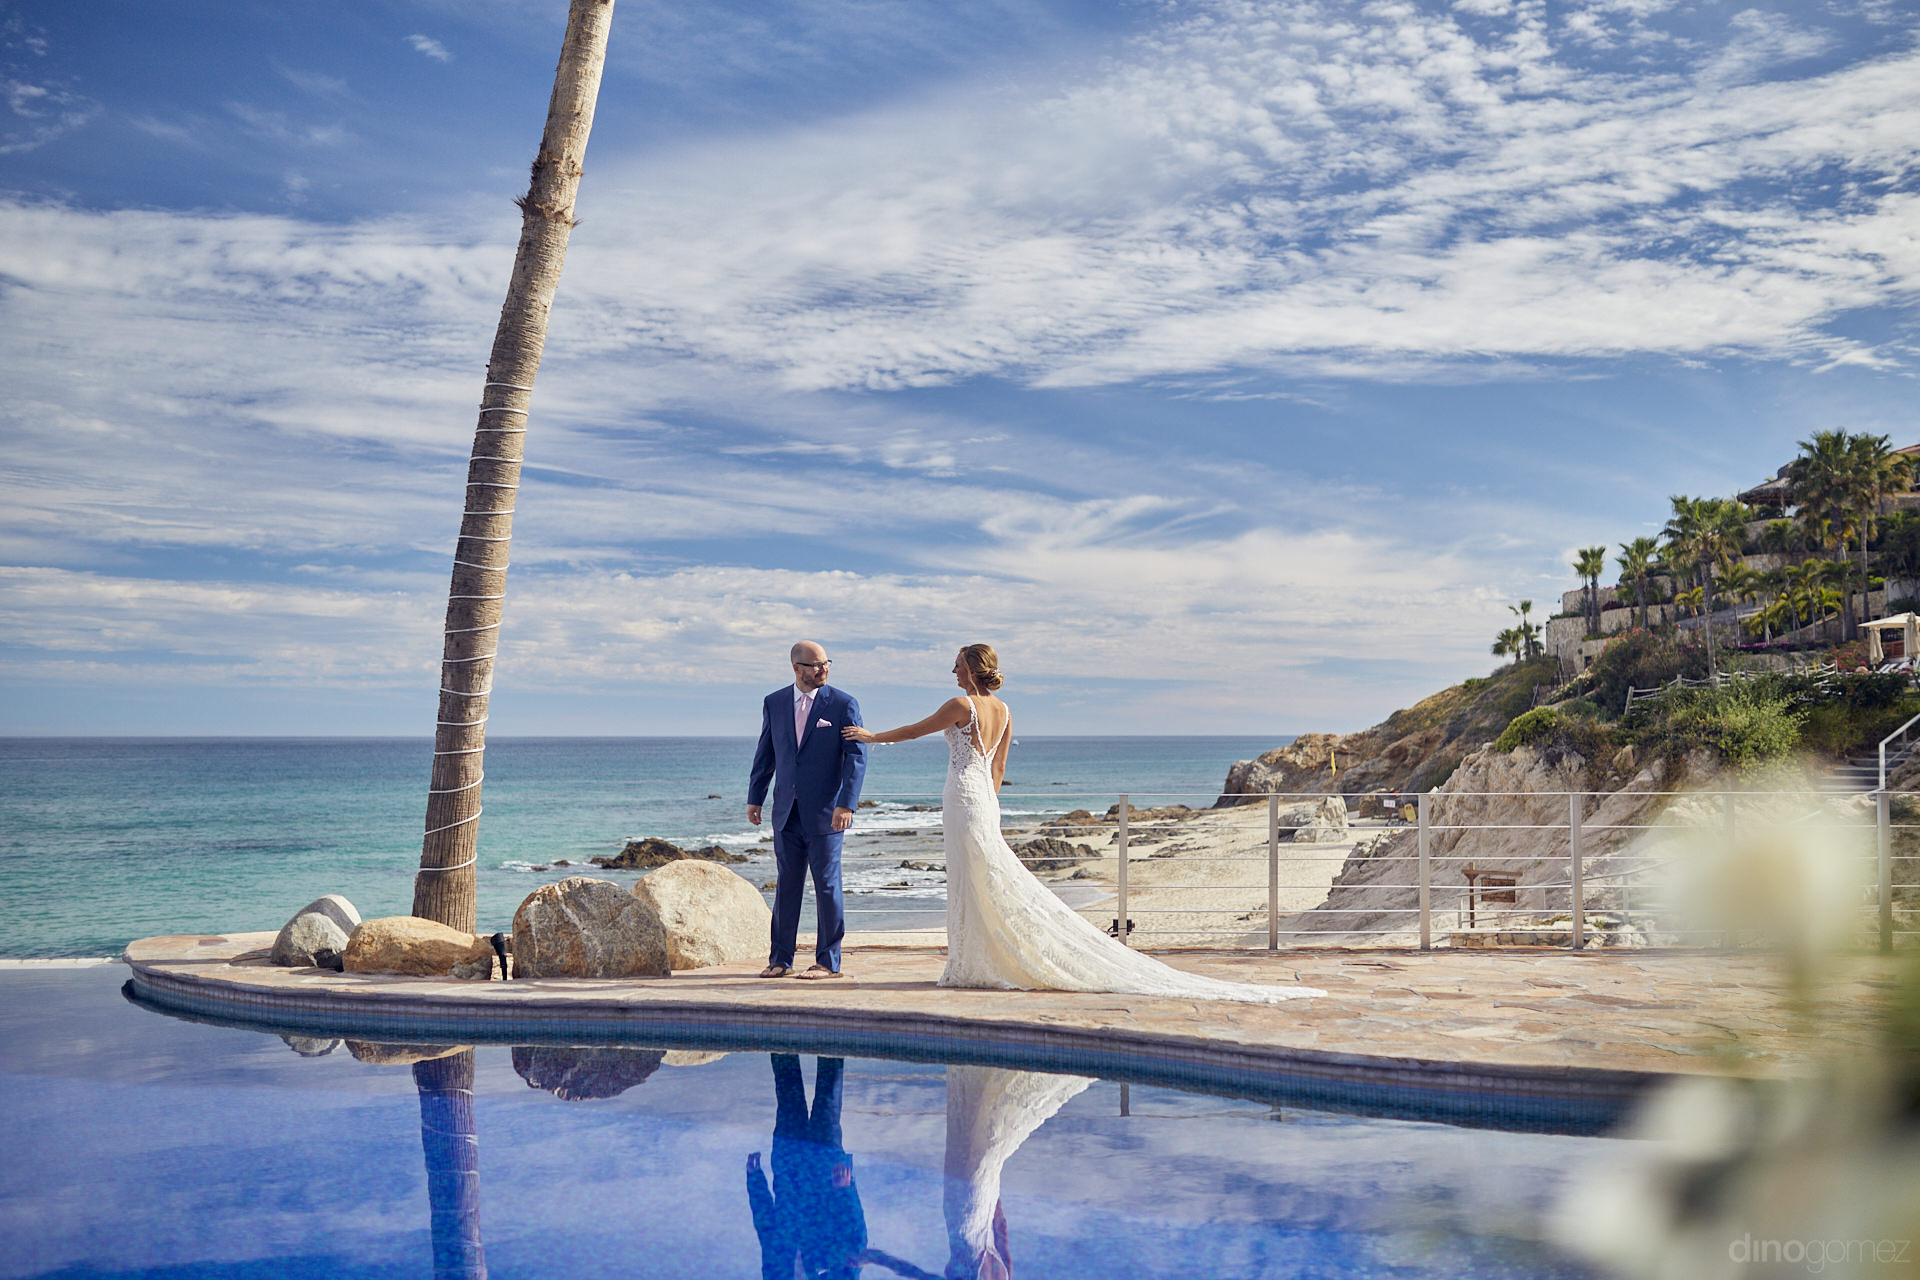 Cabo Beach Weddings Surprised This Bride And Groom - Mm